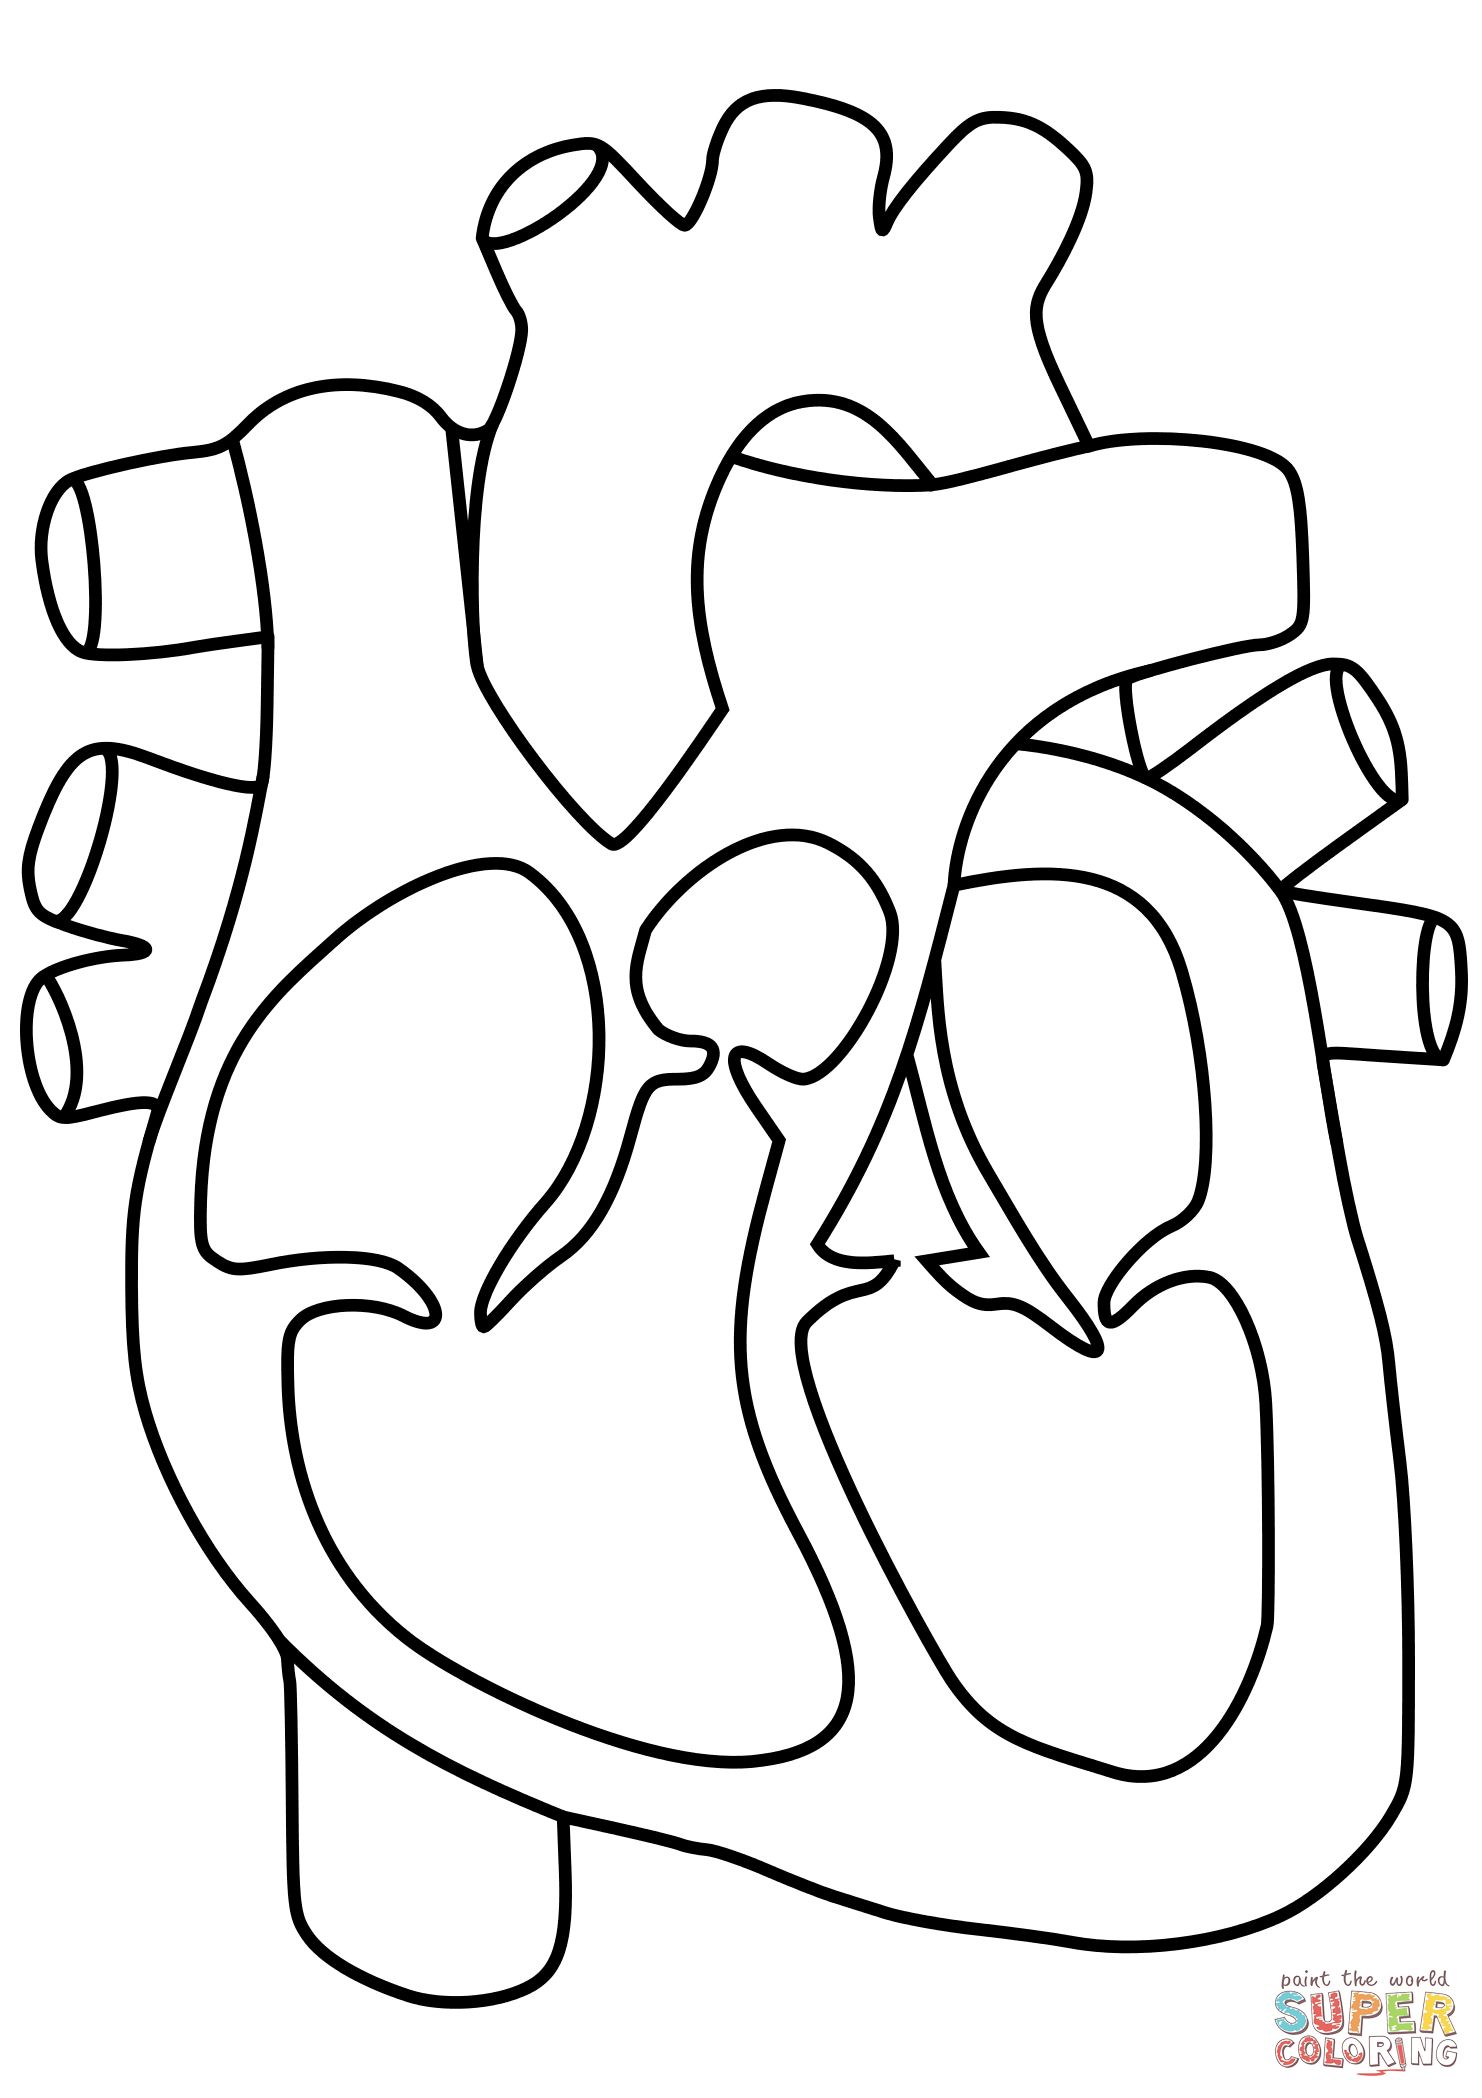 anatomical heart coloring pages anatomical heart coloring book vector for adults stock anatomical heart coloring pages